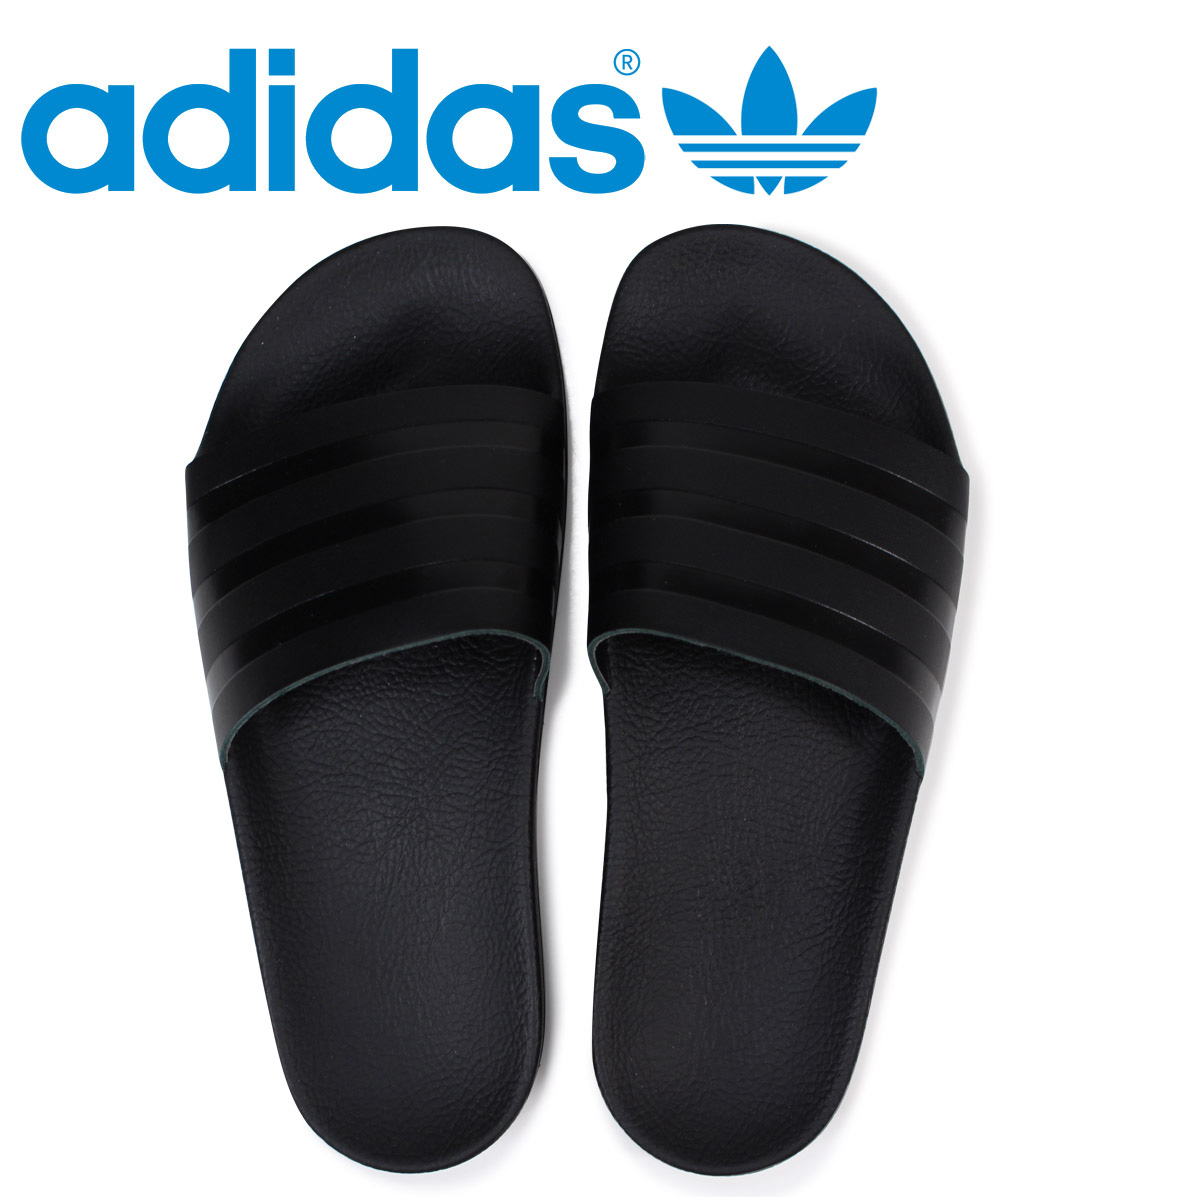 001462225ac8 アディダスアディレッタ adidas Originals sandals shower sandals ADILETTE SLIDES men  CQ3094 black originals  load planned Shinnyu load in reservation product ...